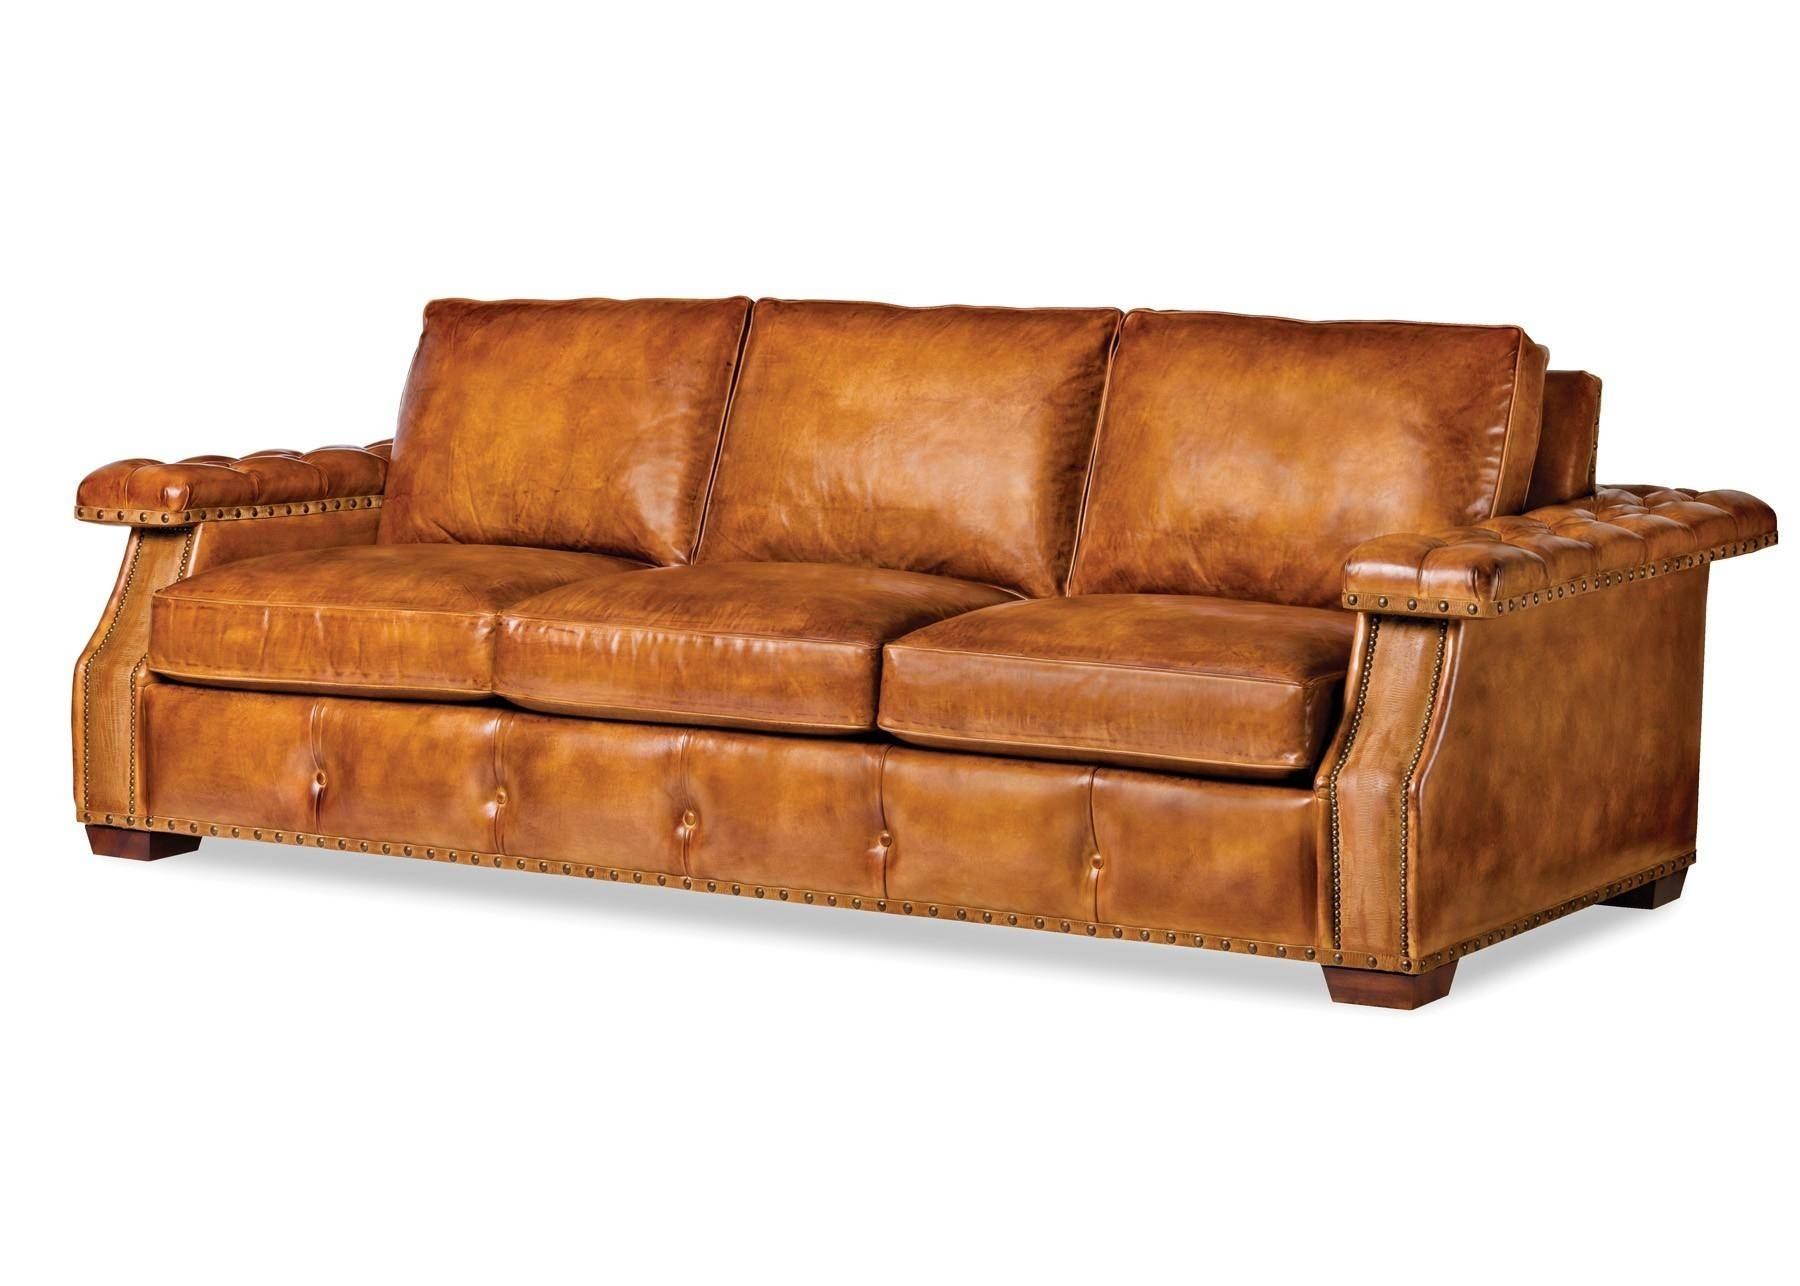 2017 Latest Camel Colored Leather Sofas | Sofa Ideas regarding Camel Color Sofas (Image 1 of 15)